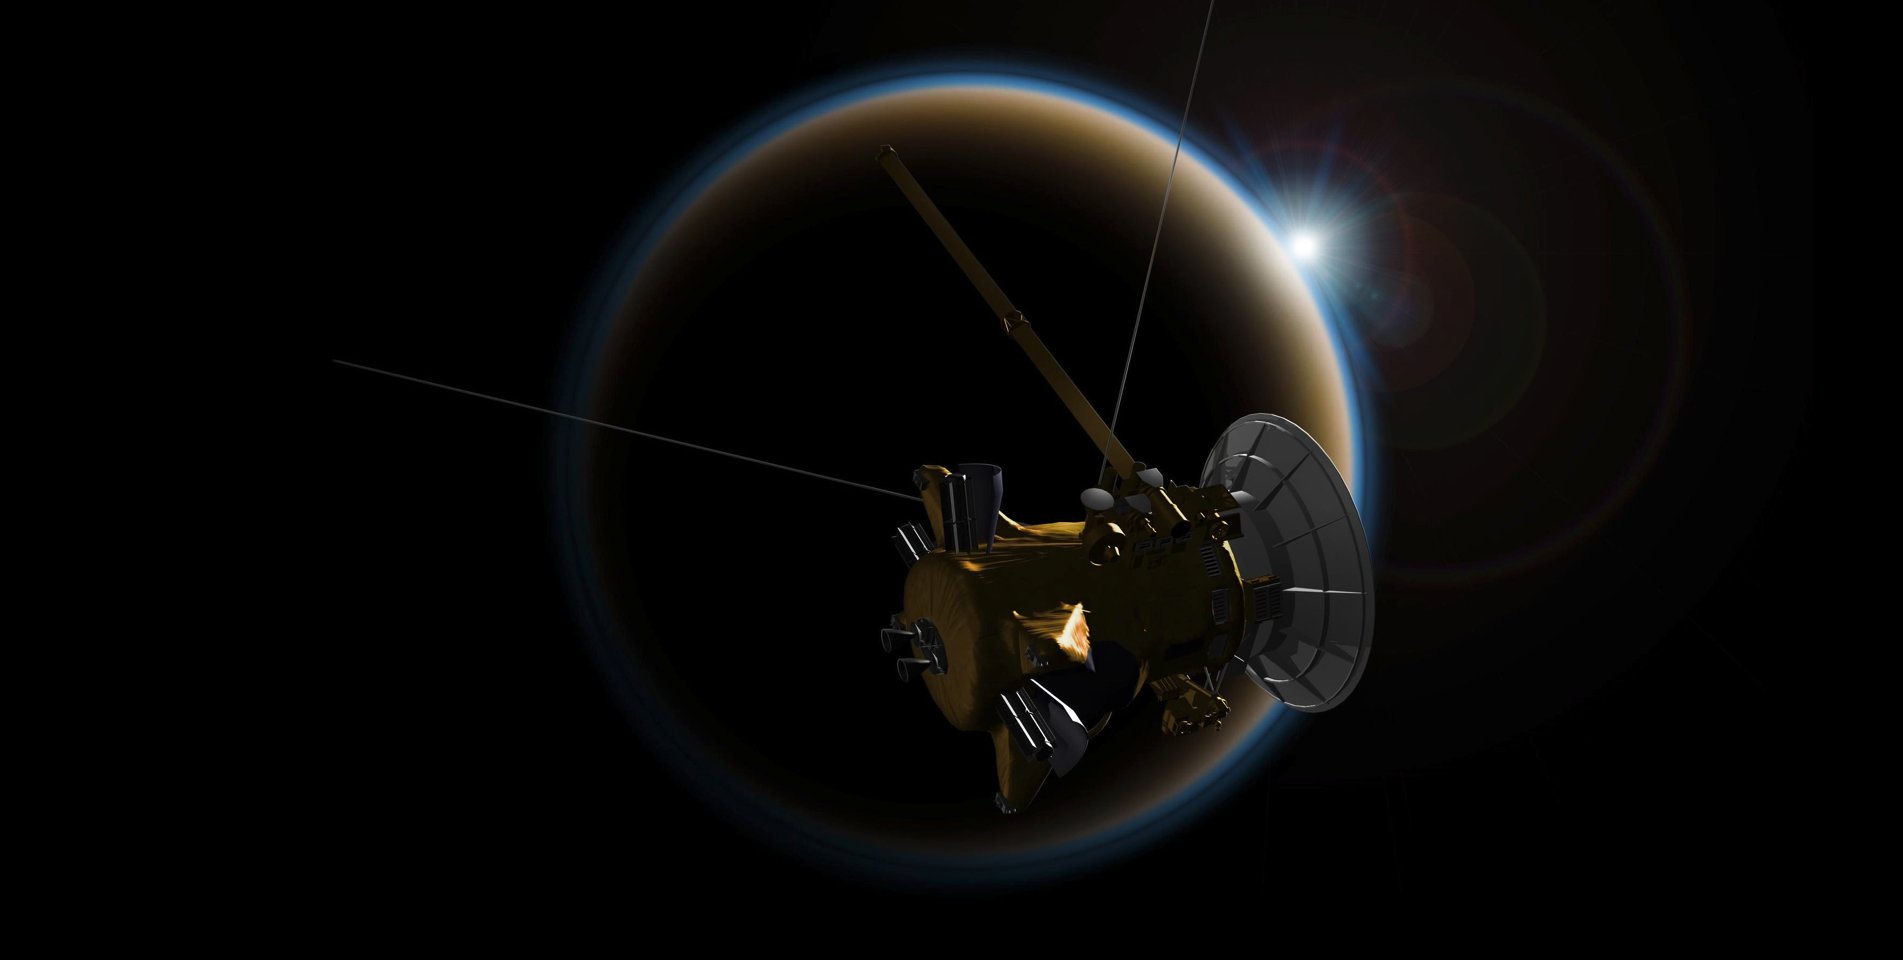 Titan impact craters reveal connections to planetary weather, set the stage for Dragonfly